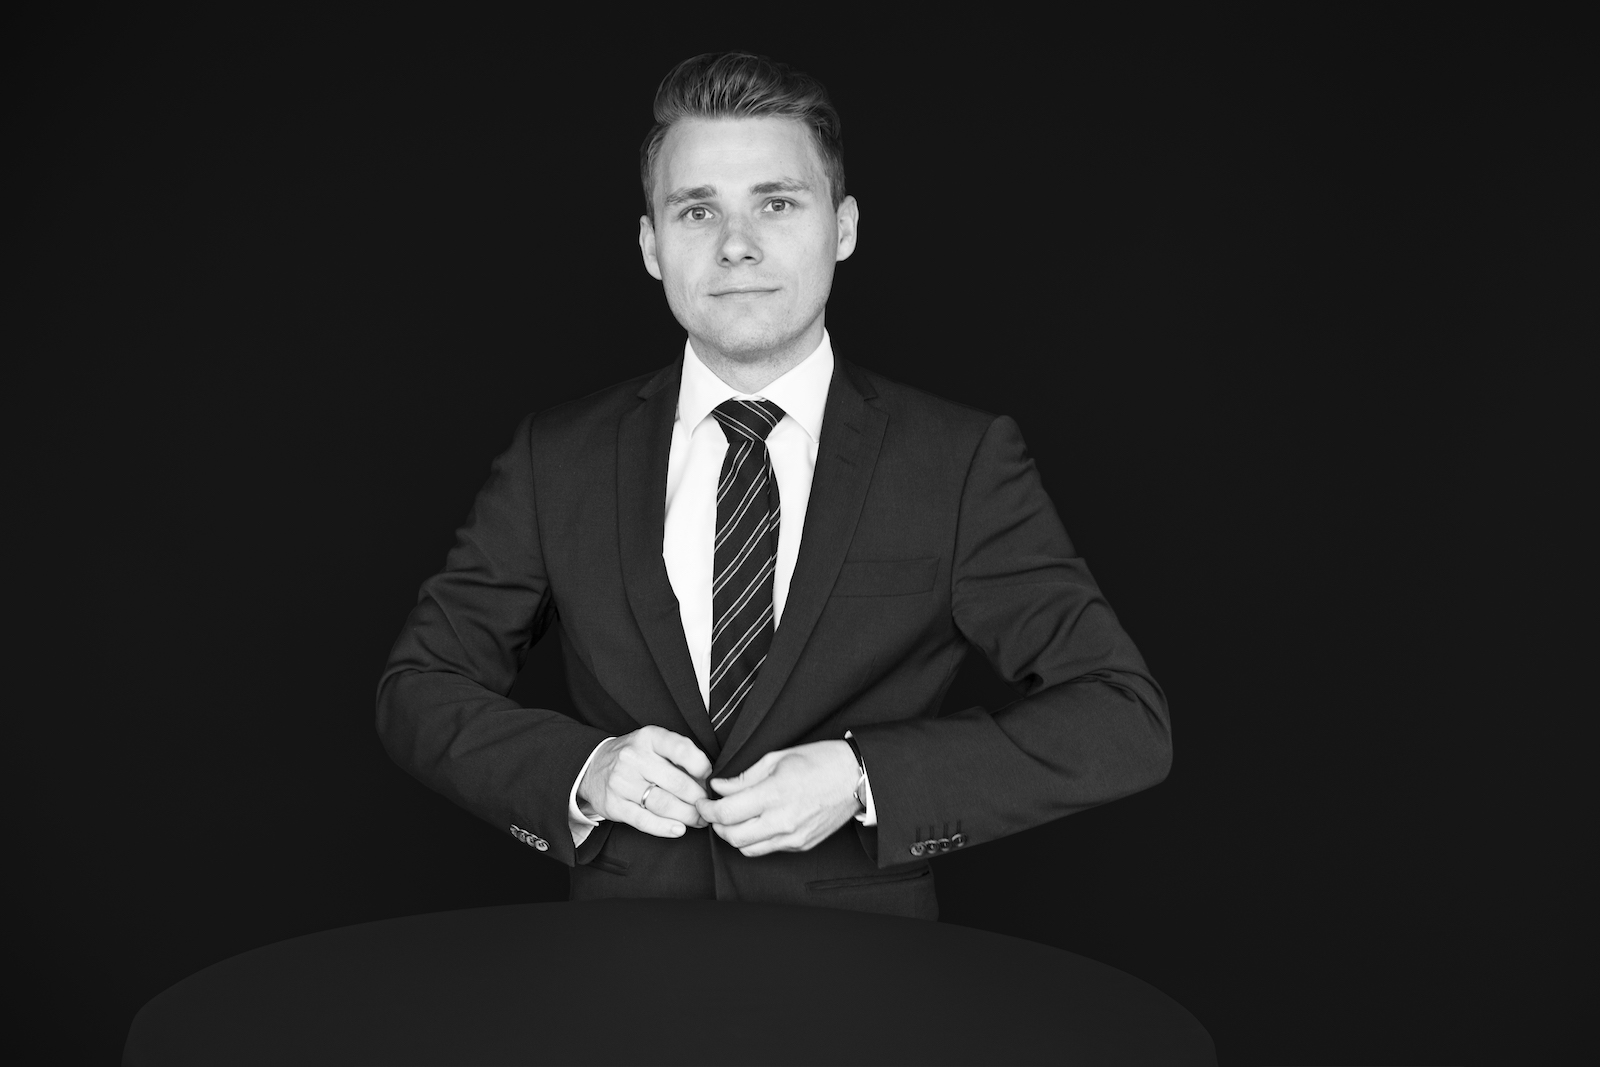 Success in corporate finance - insight from a rising star